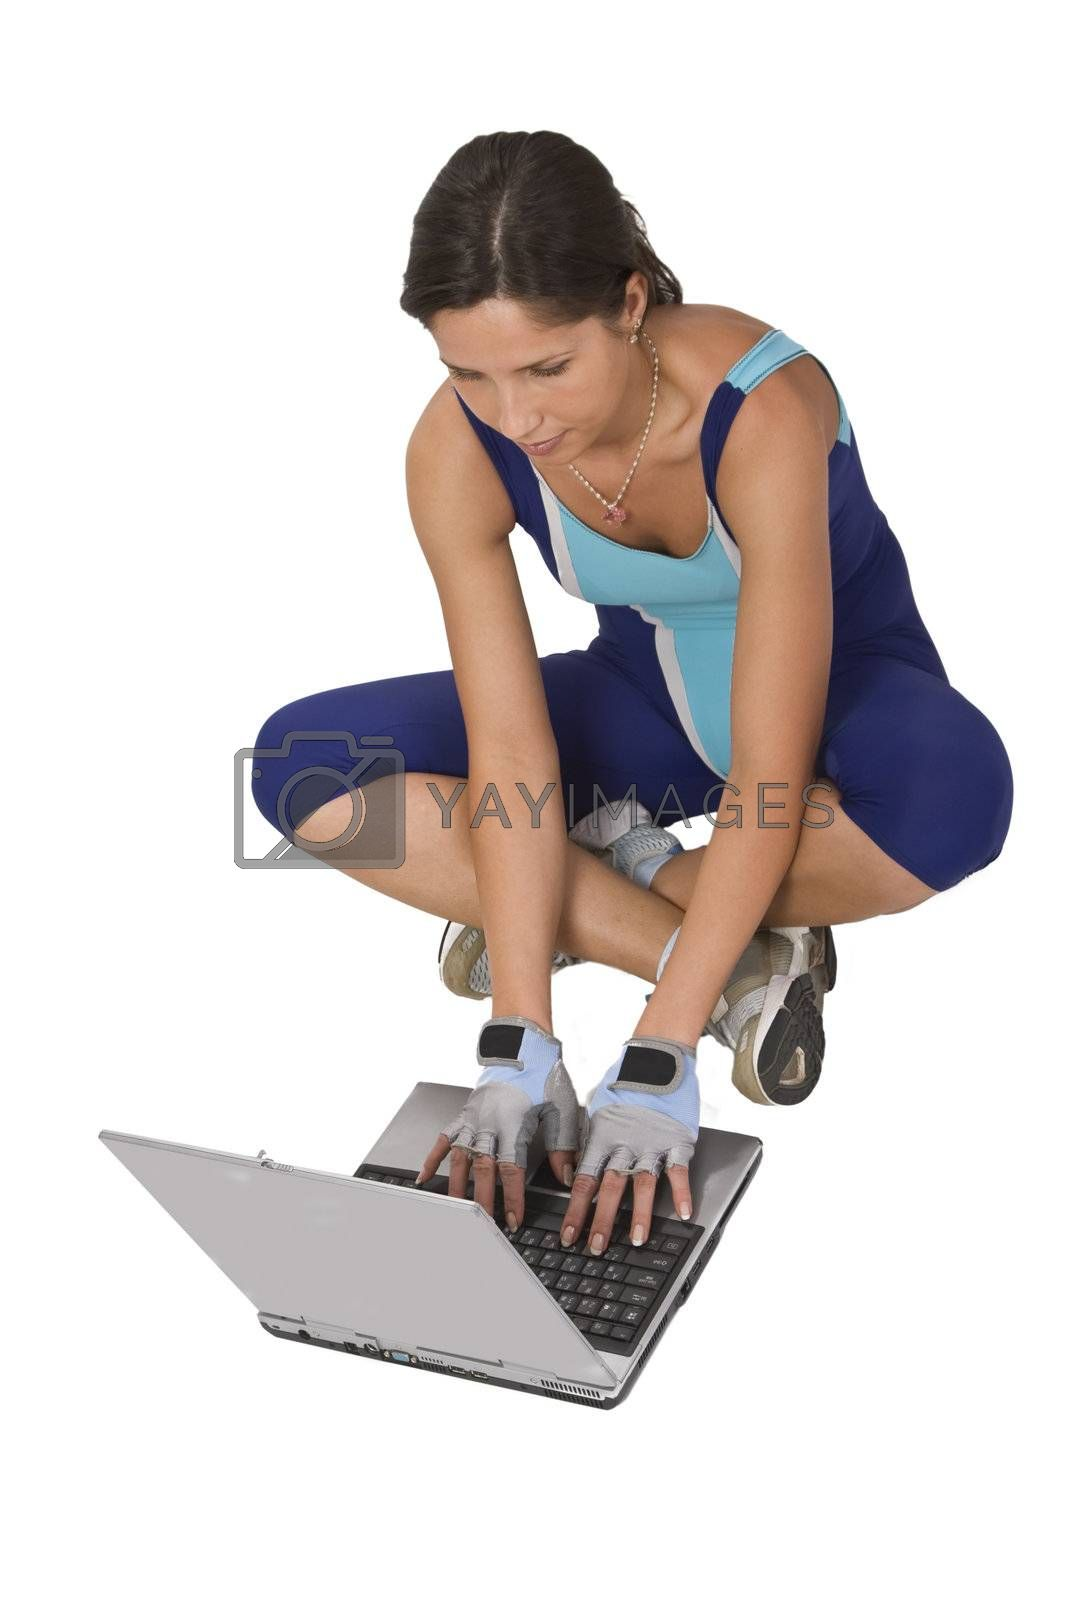 Woman in training equipment searching for something on a laptop.